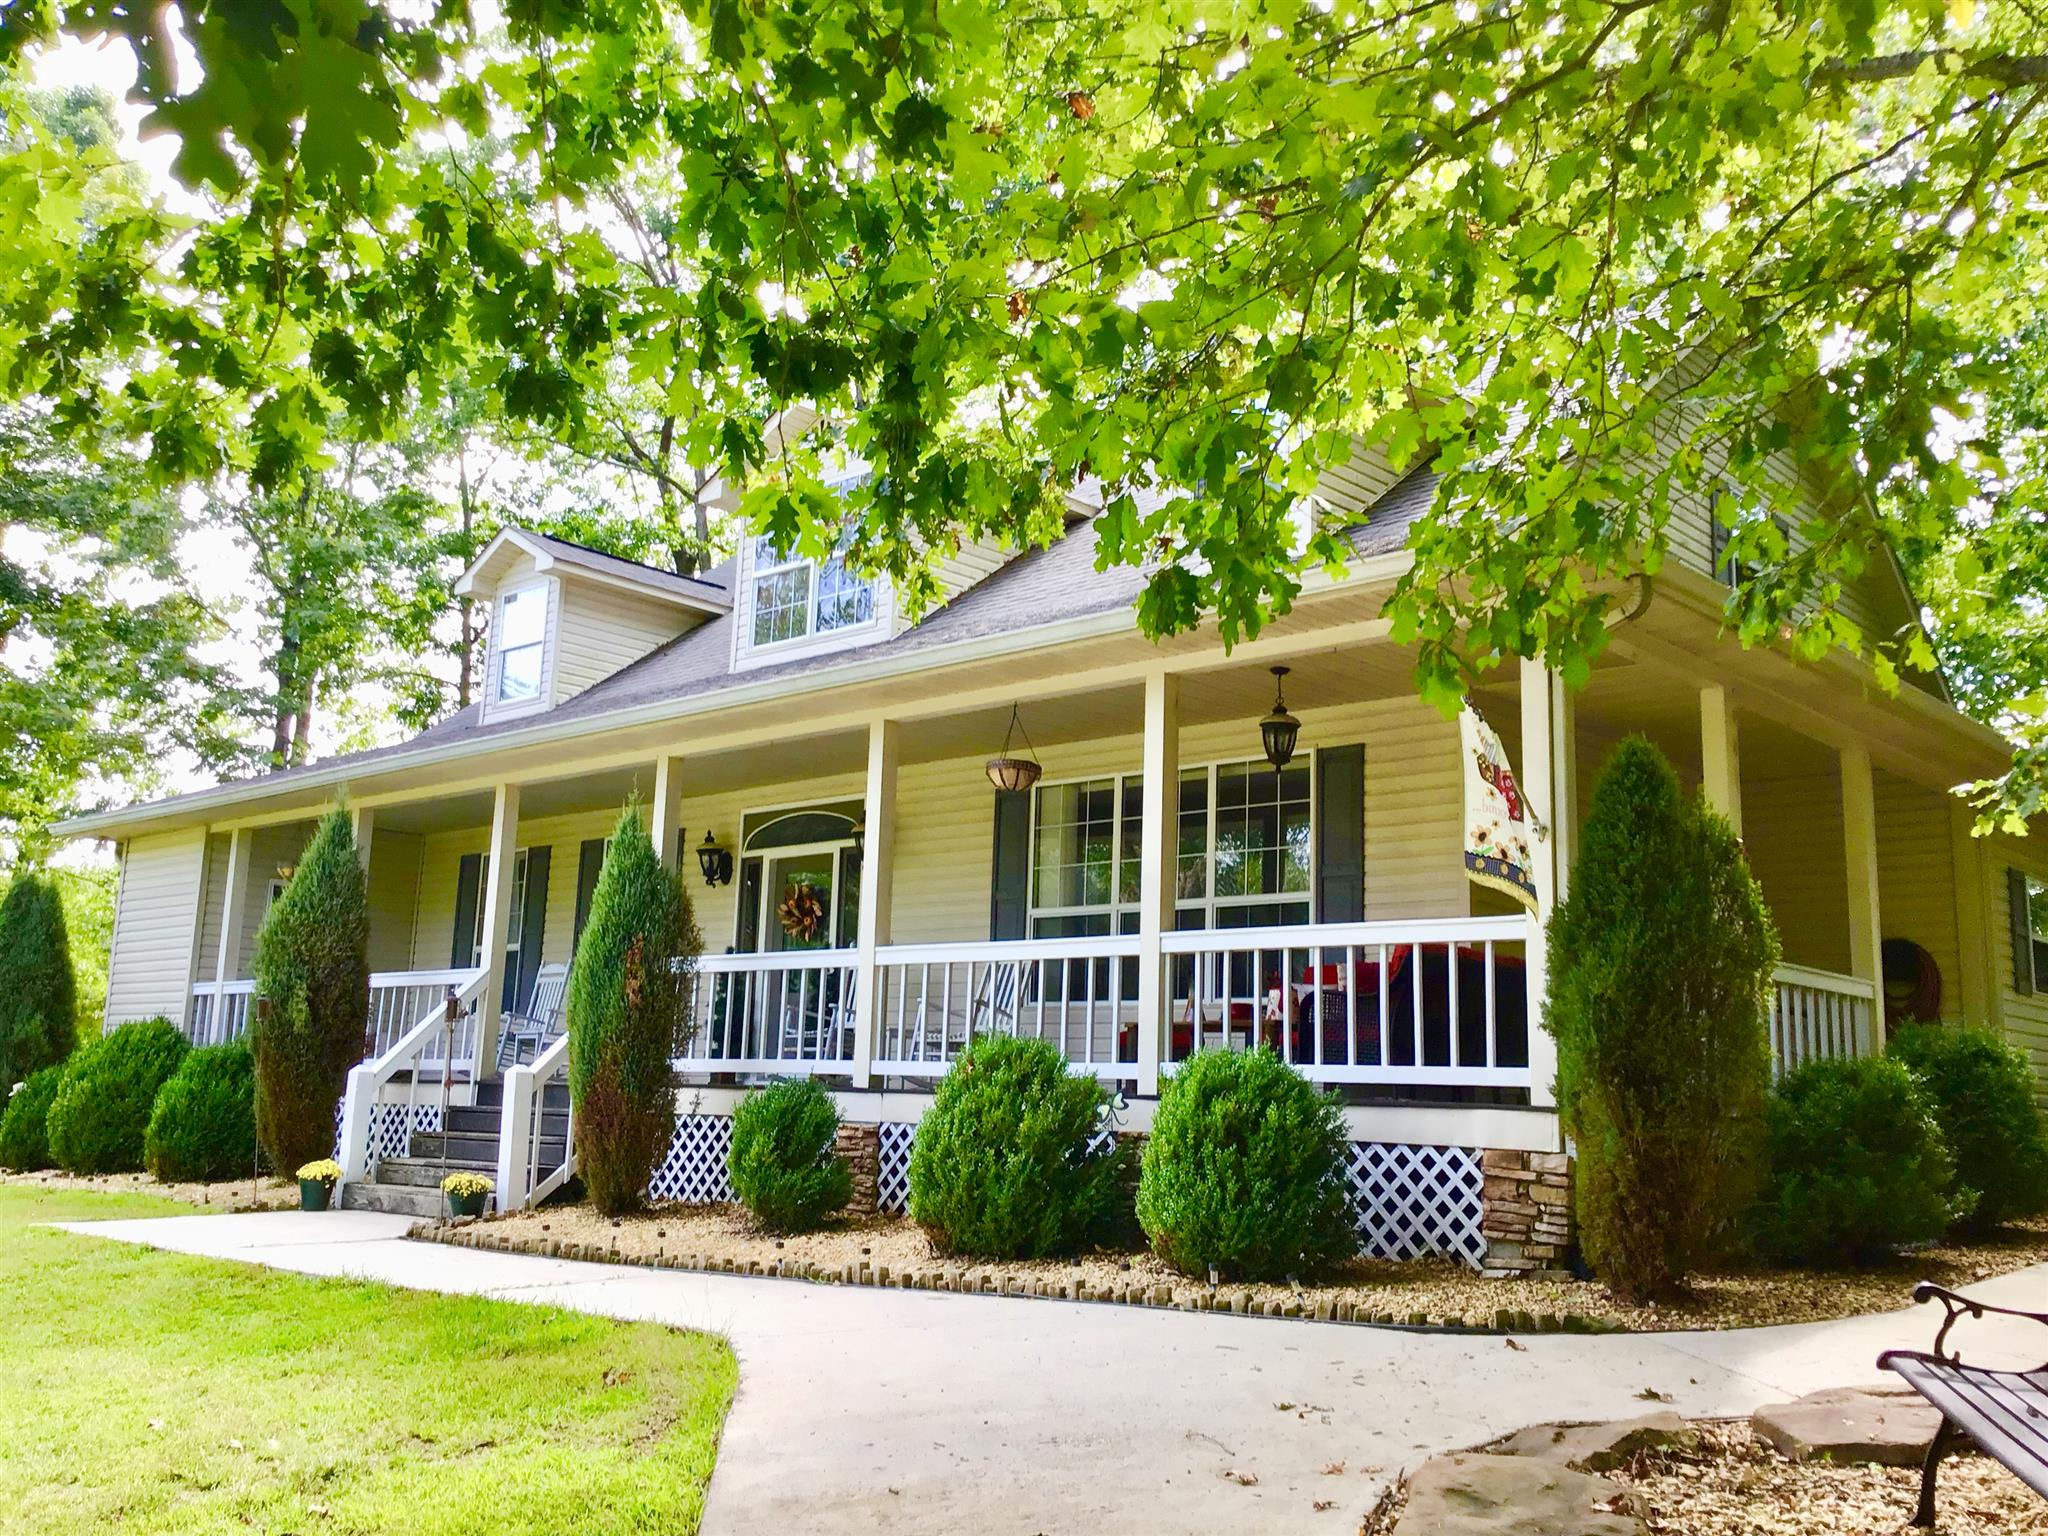 109 Wash Roberts Rd, McMinnville, TN 37110 - McMinnville, TN real estate listing